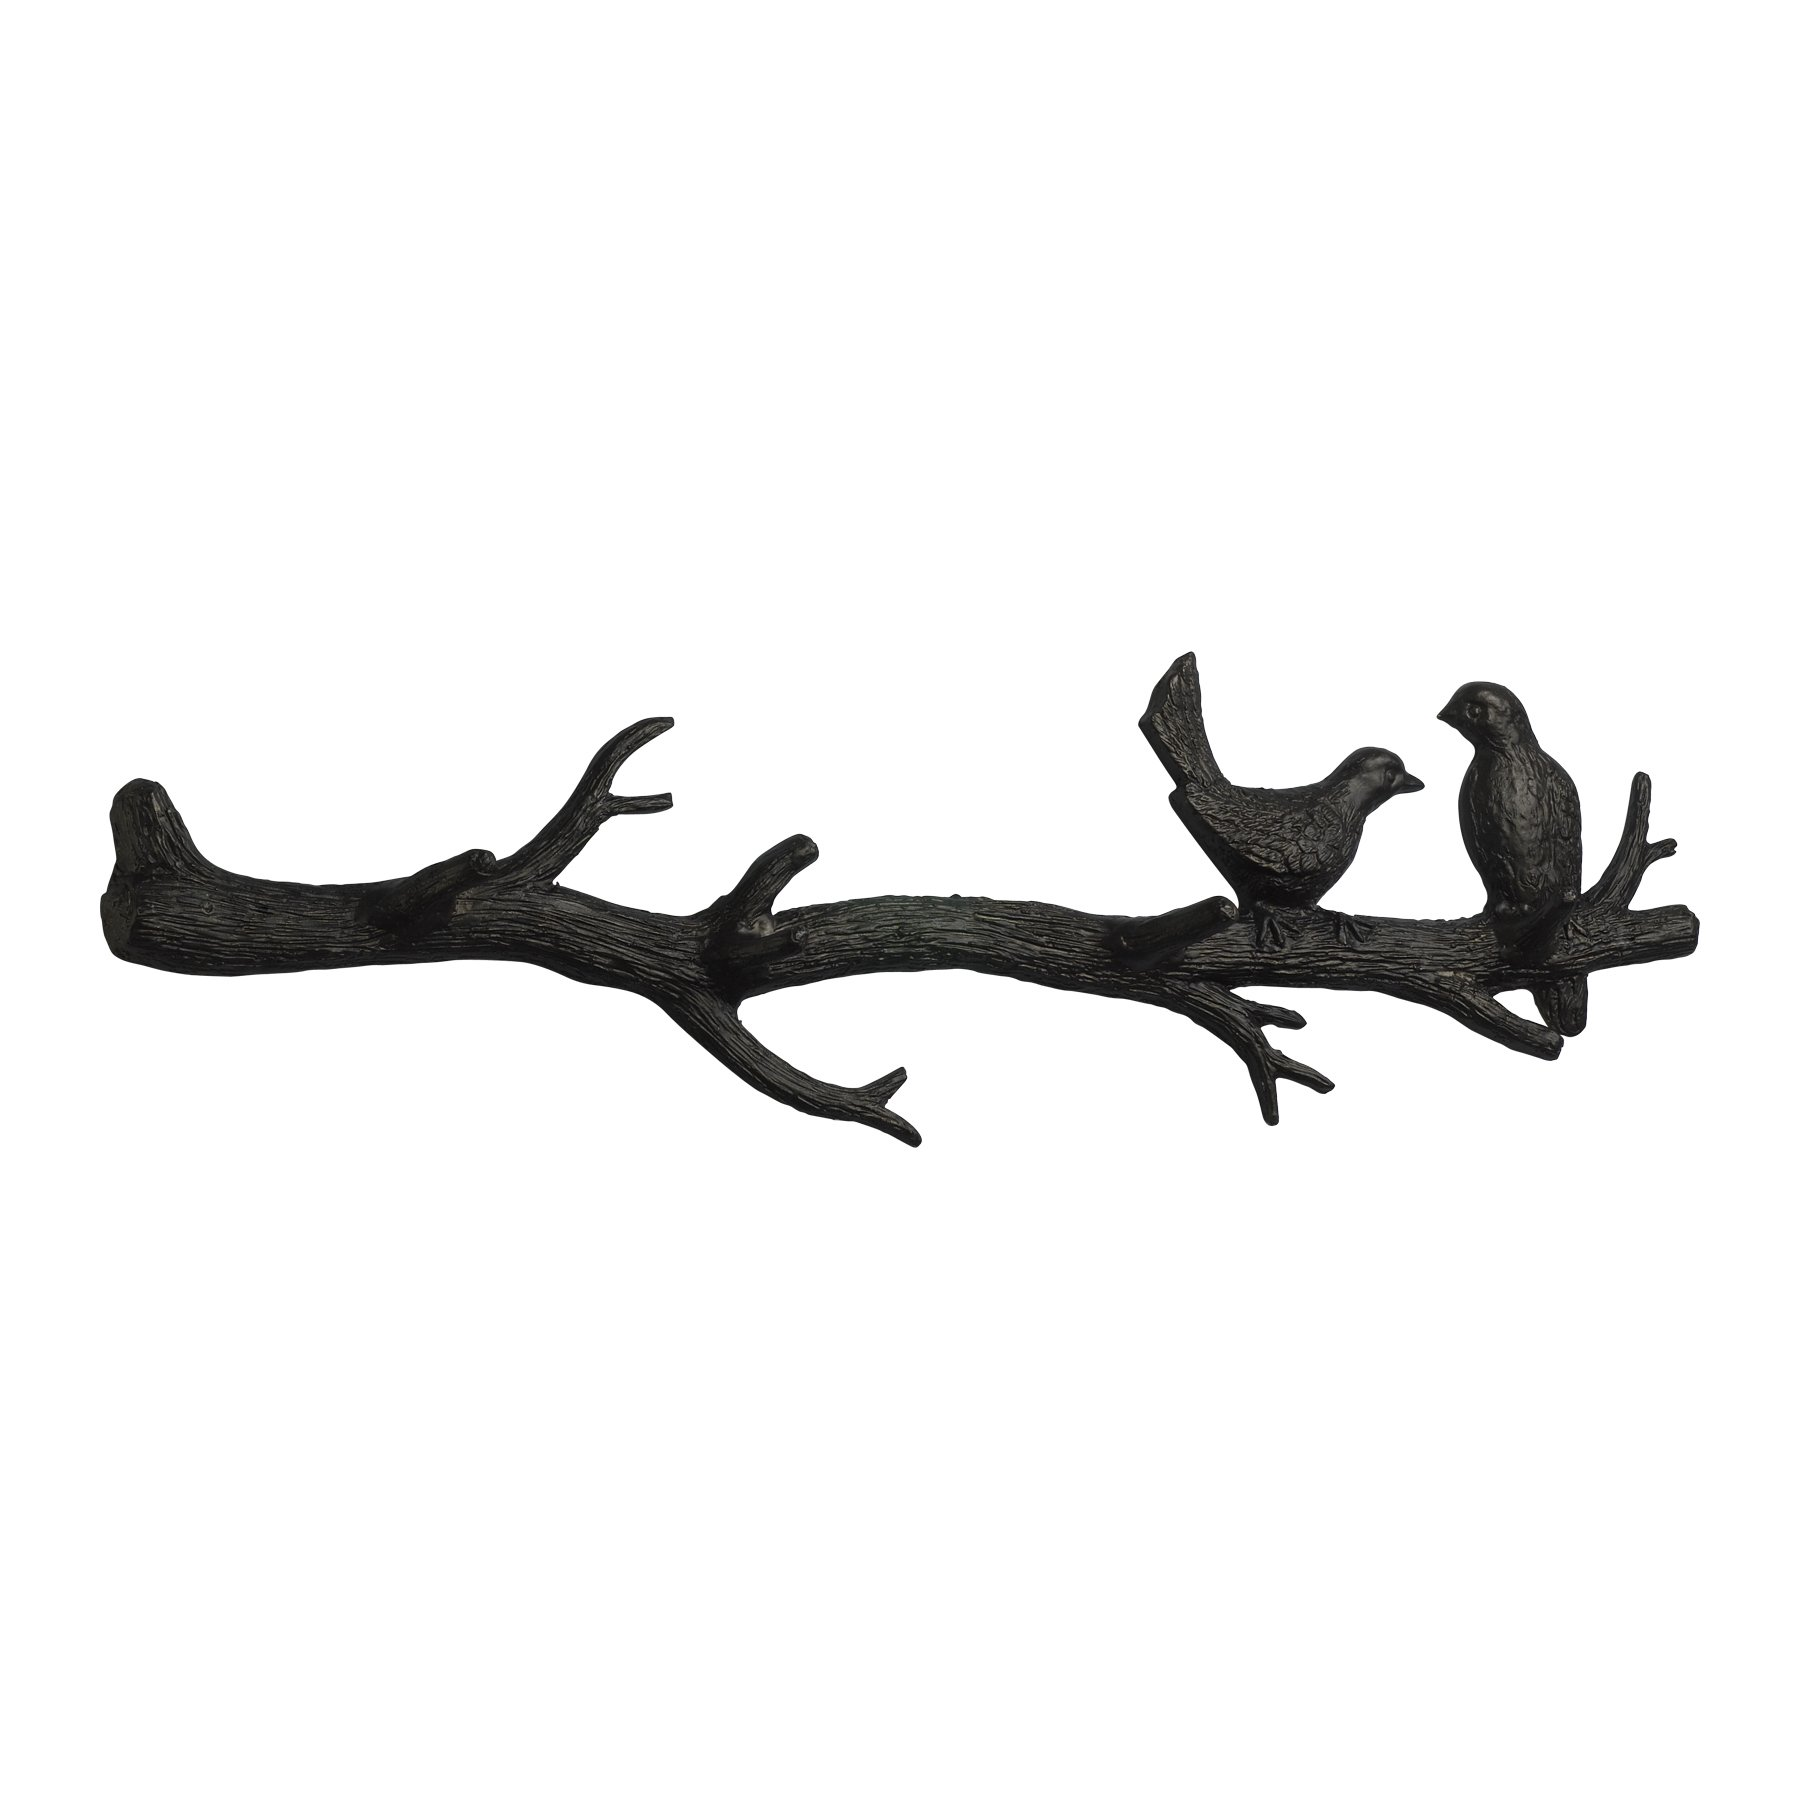 Cyan Design 01868 Bird Branch Coat Hook Ideal Gift for Wedding, Floral / Floor Vase, Party, Home Decor, Office, Spa by Cyan Design